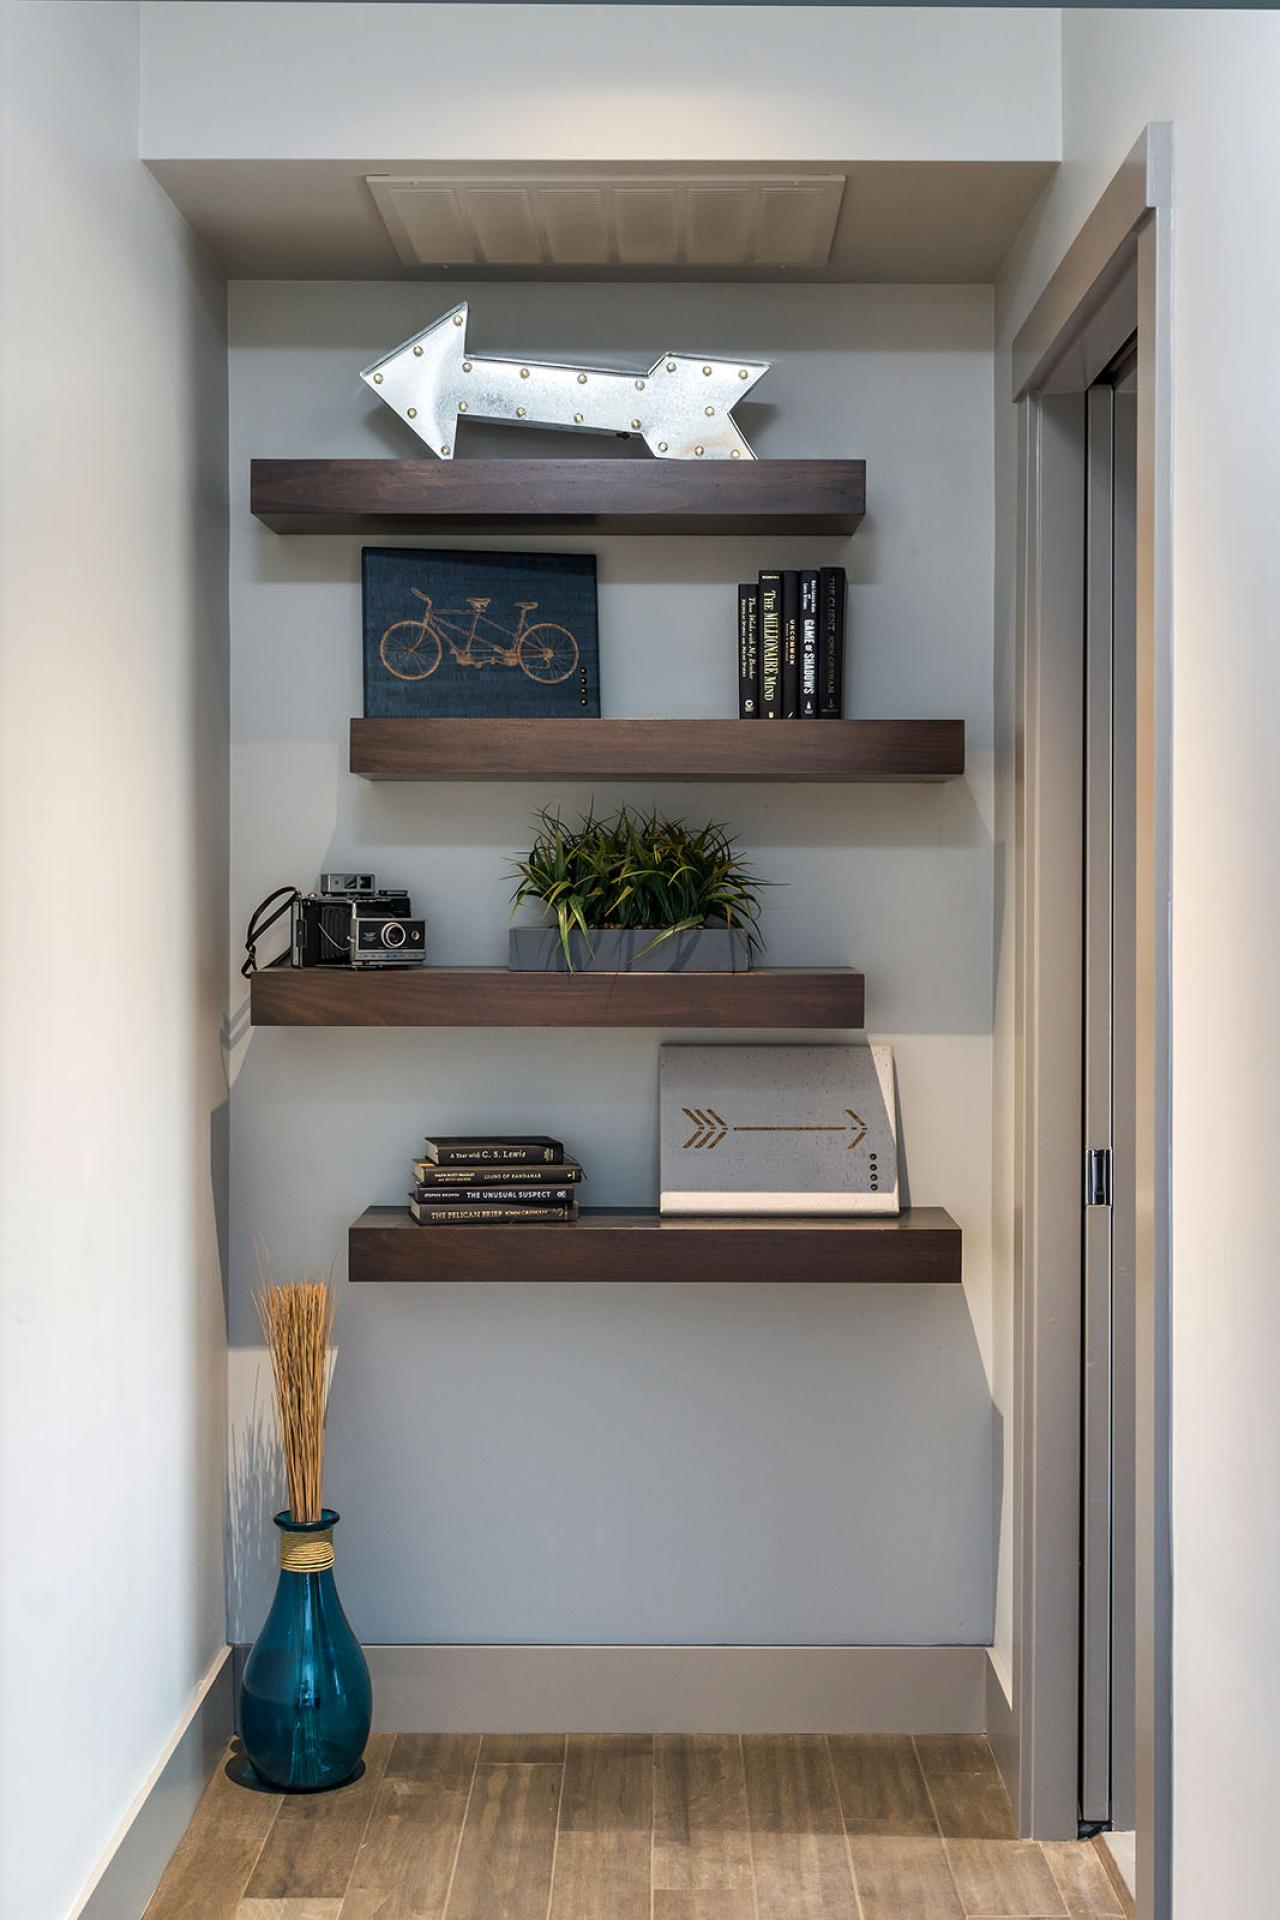 ways decorate with floating shelves decorating bookshelf decorative contemporary hallway steel angle shelf brackets dark cherry walnut ikea metal and wood coat rack ledge brown